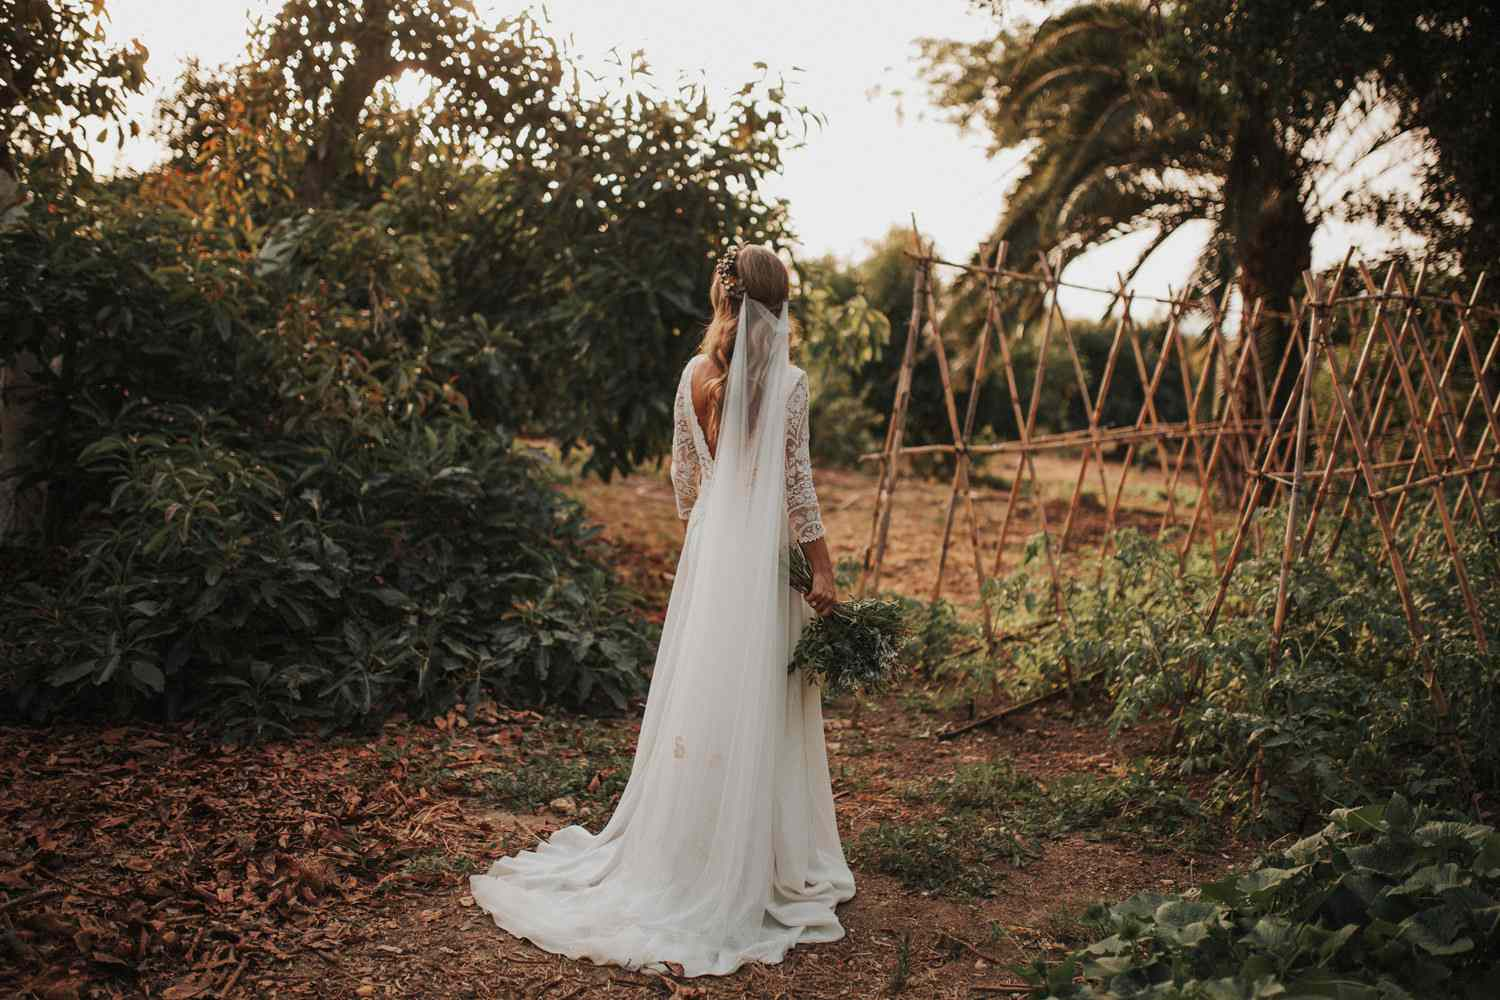 <p>Bride solo shot from behind</p><br><br>